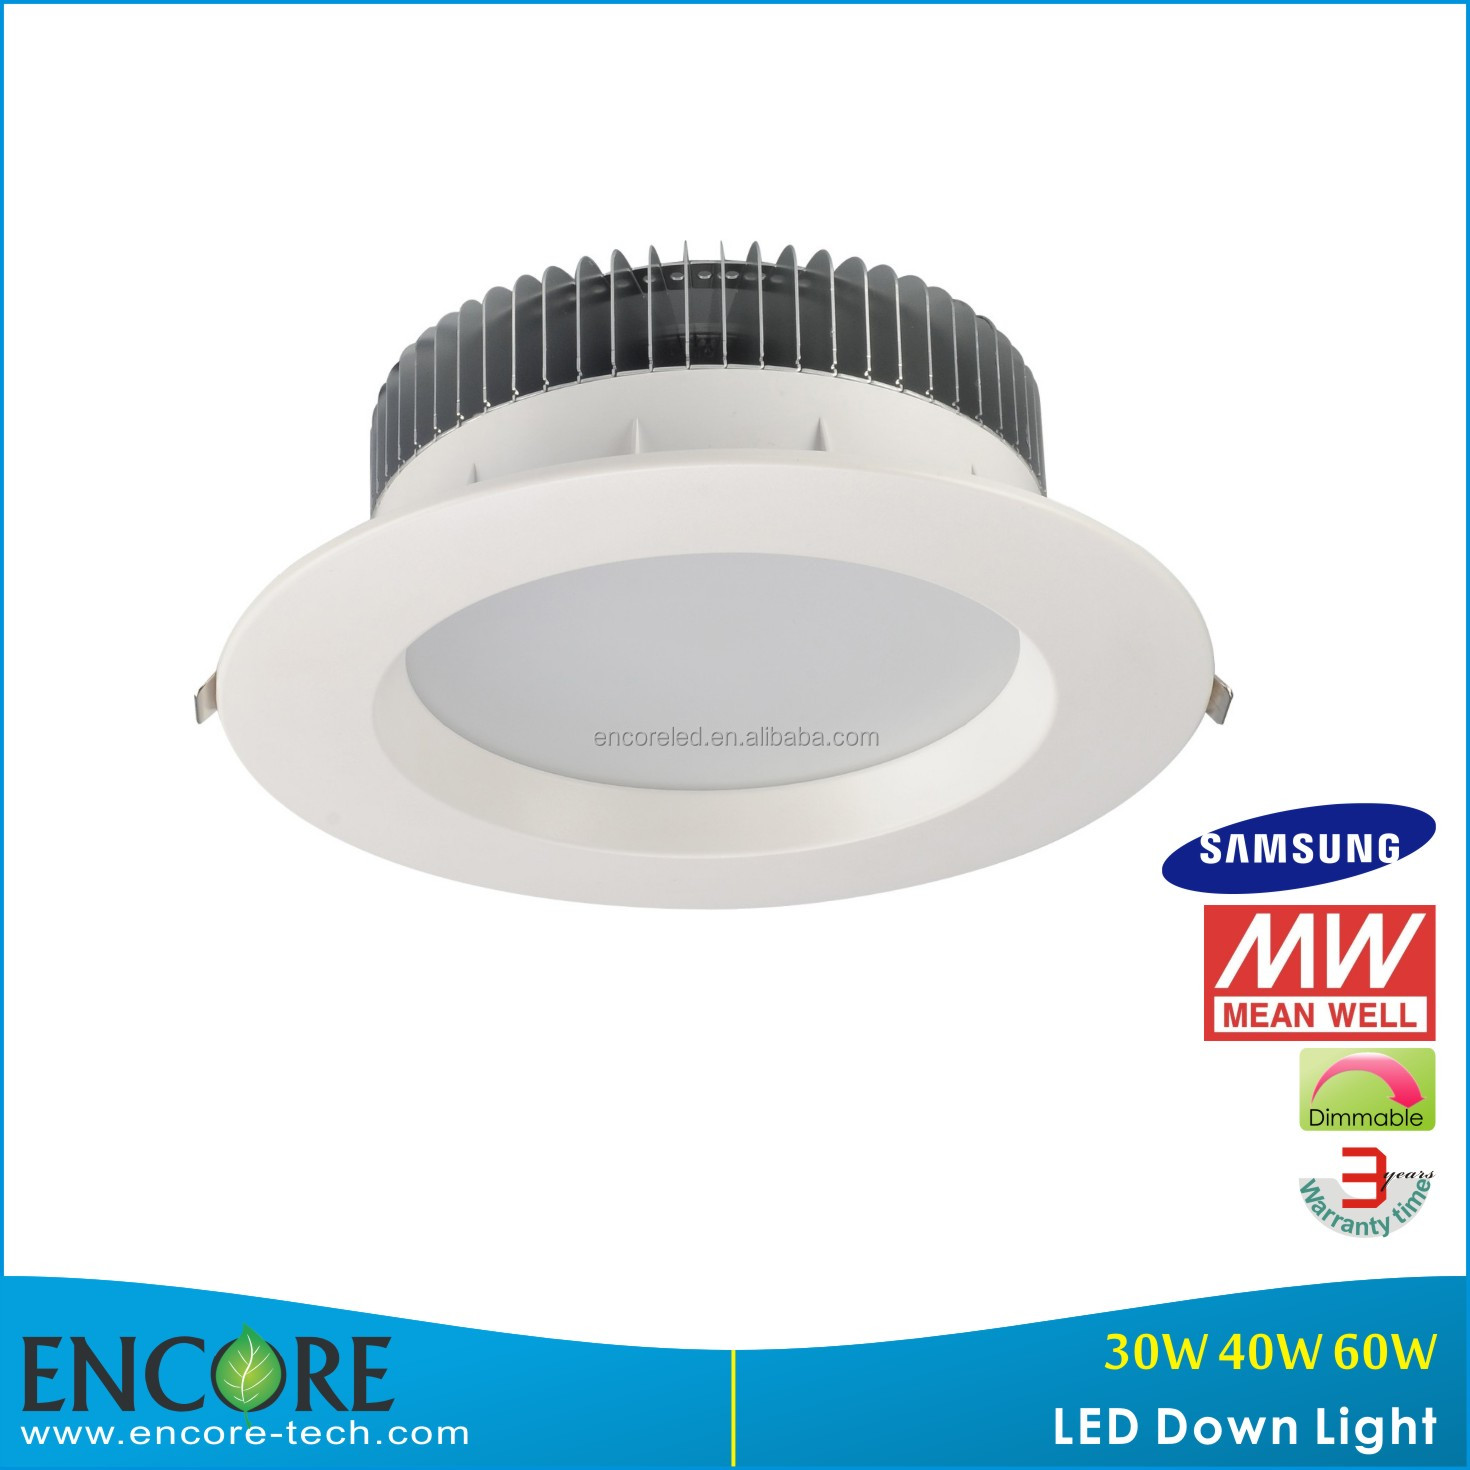 "Encore 30W COB High Power LED Downlight/ 8"" COB Round LED Spot Down Light with Traic, DALI, 0-10V dimmable Function"